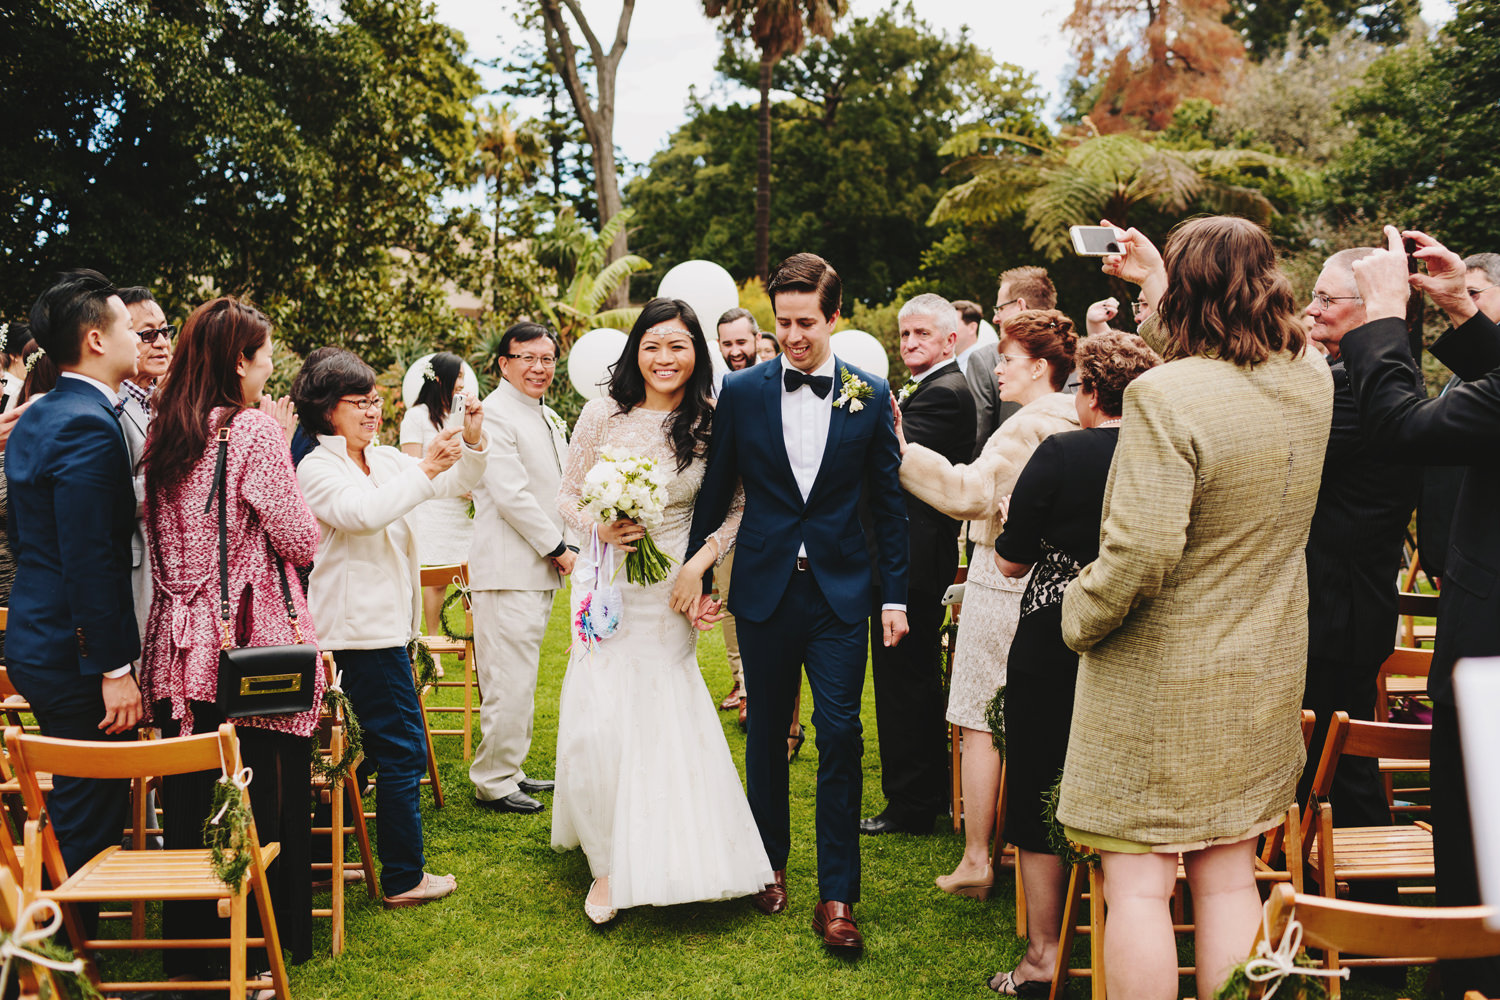 071-Melbourne_Wedding_Photographer_Jonathan_Ong_Best2015.jpg